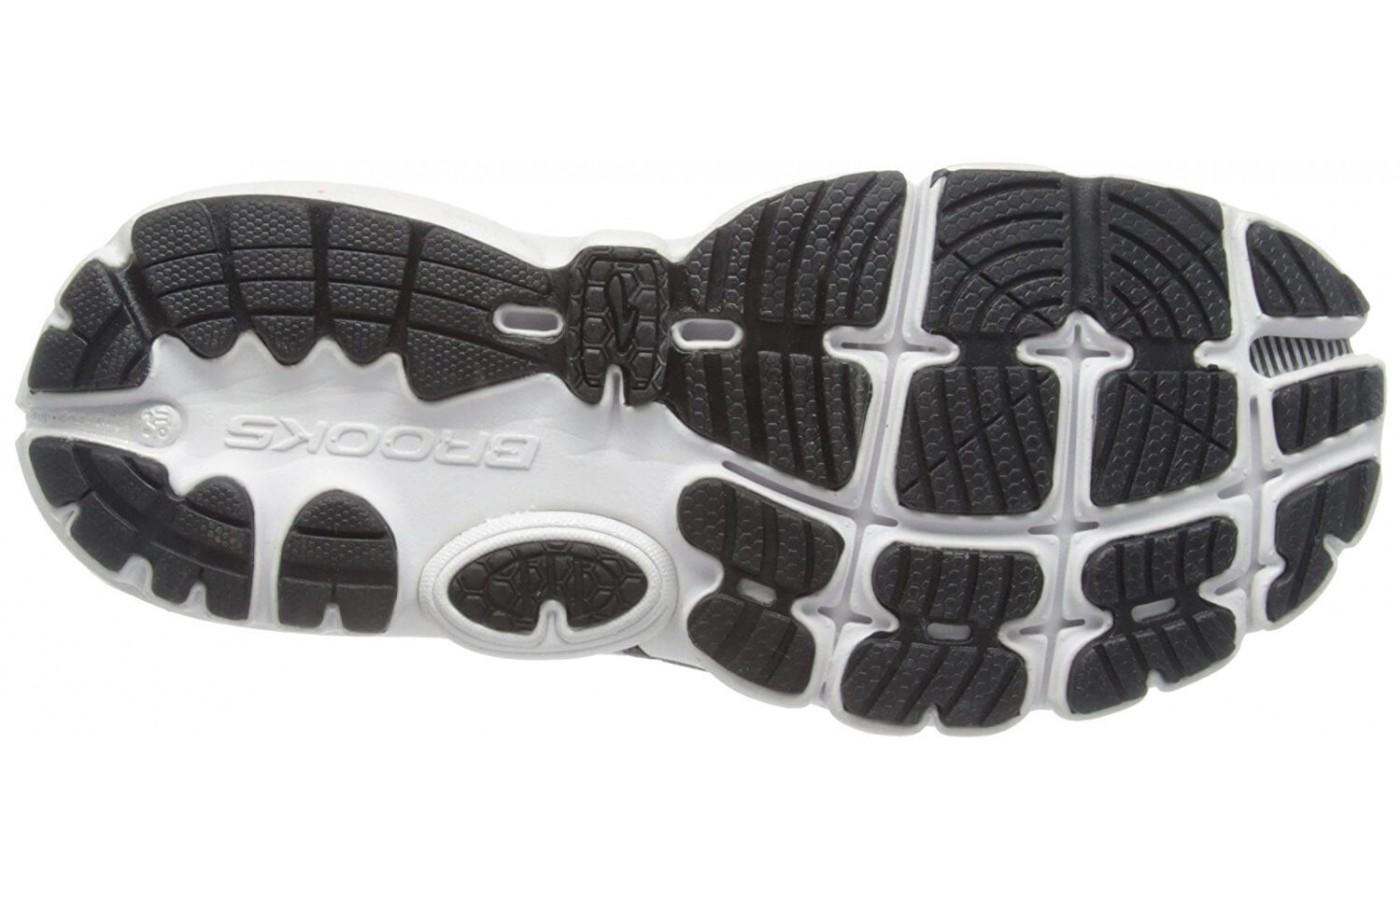 Traction focused outsole of the Brooks PureCadence